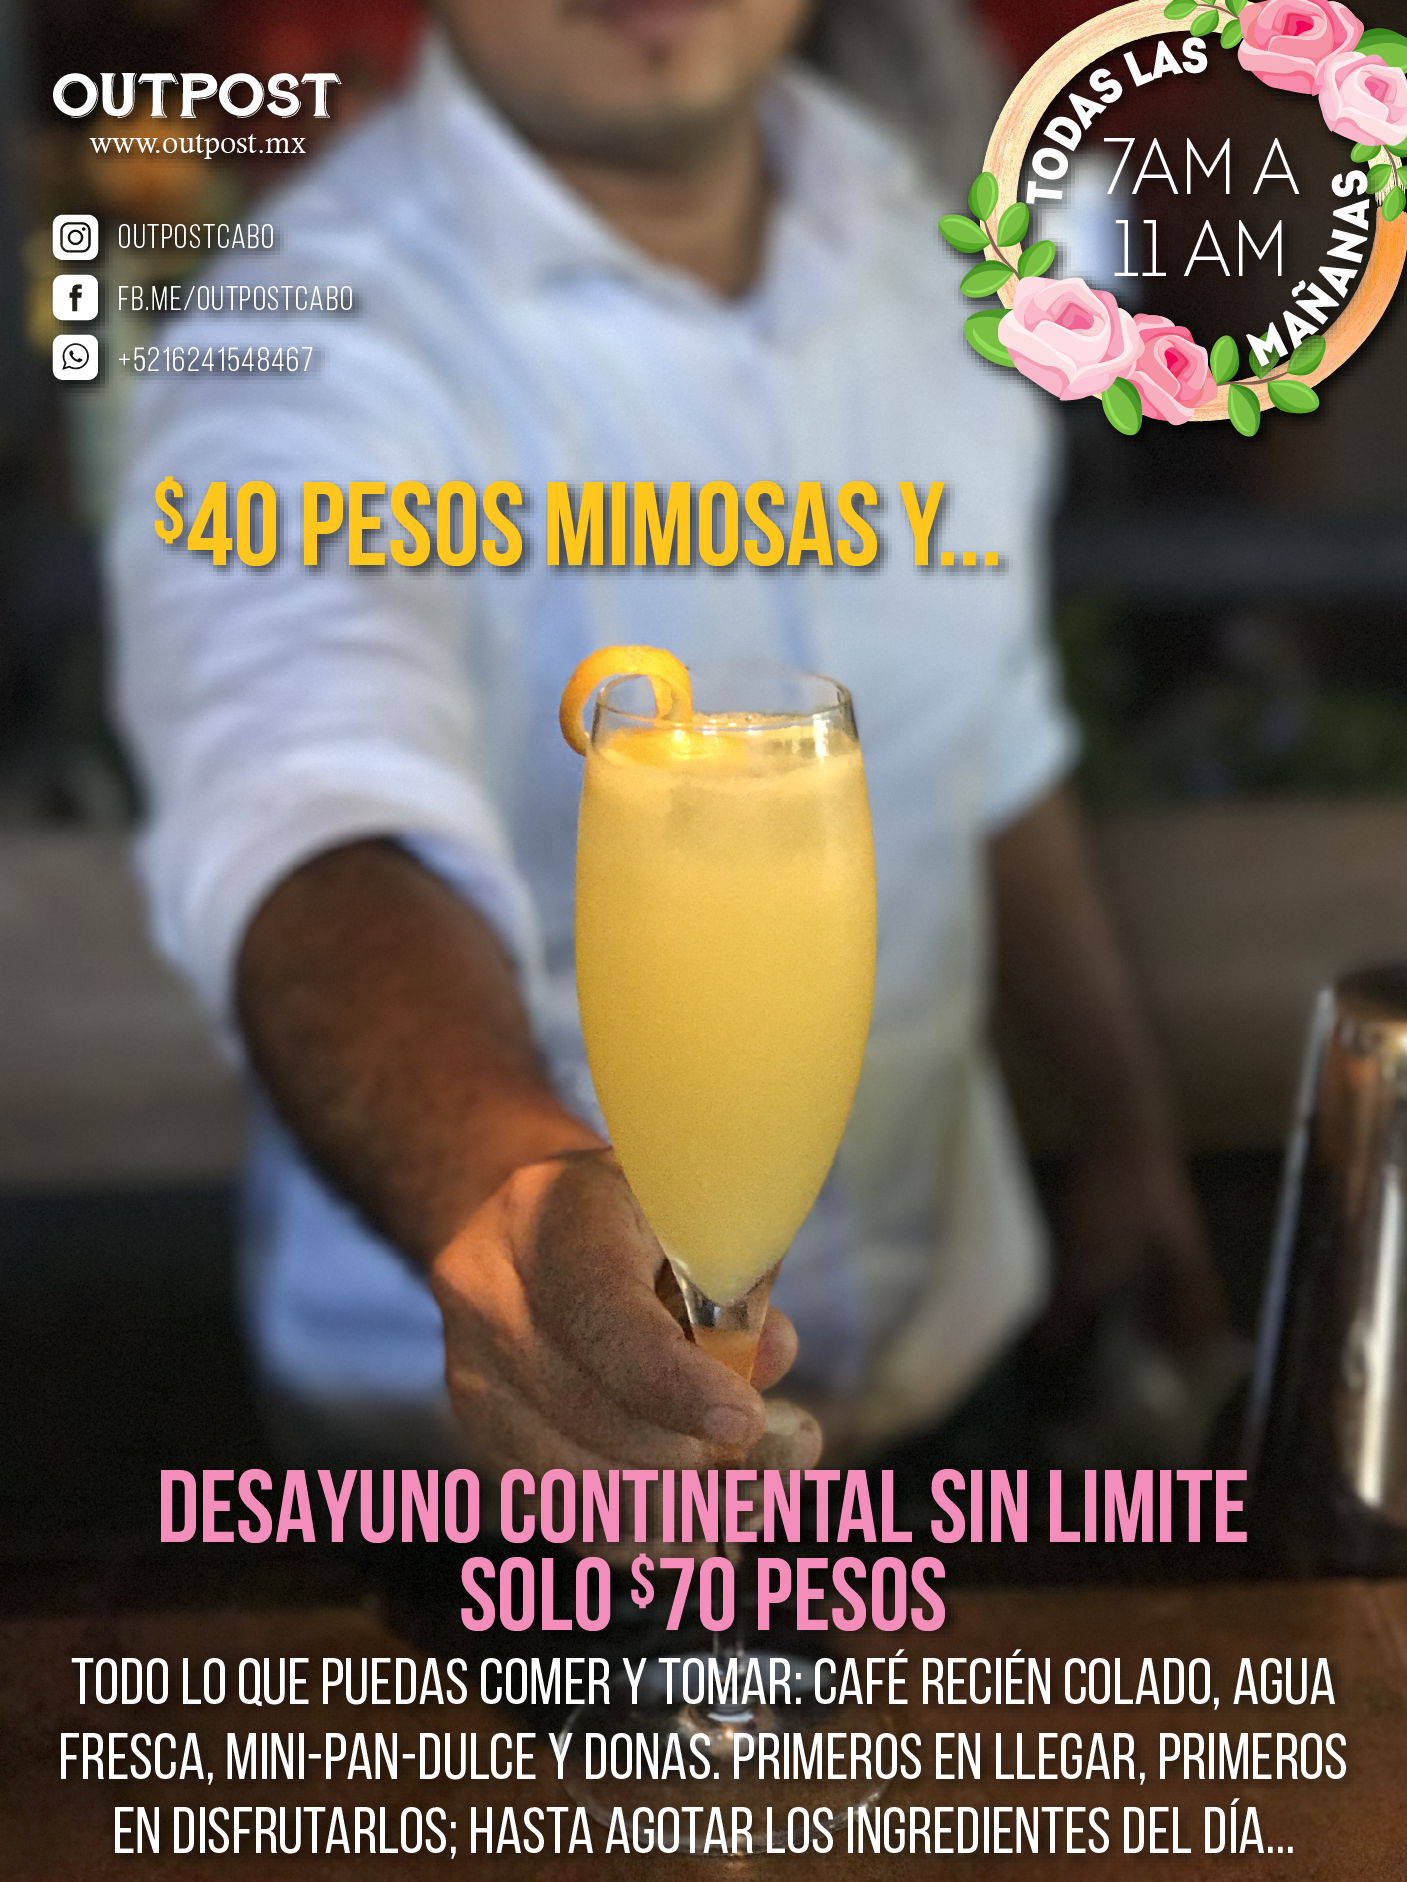 mimosa breakfast outpost cabo flyer.png